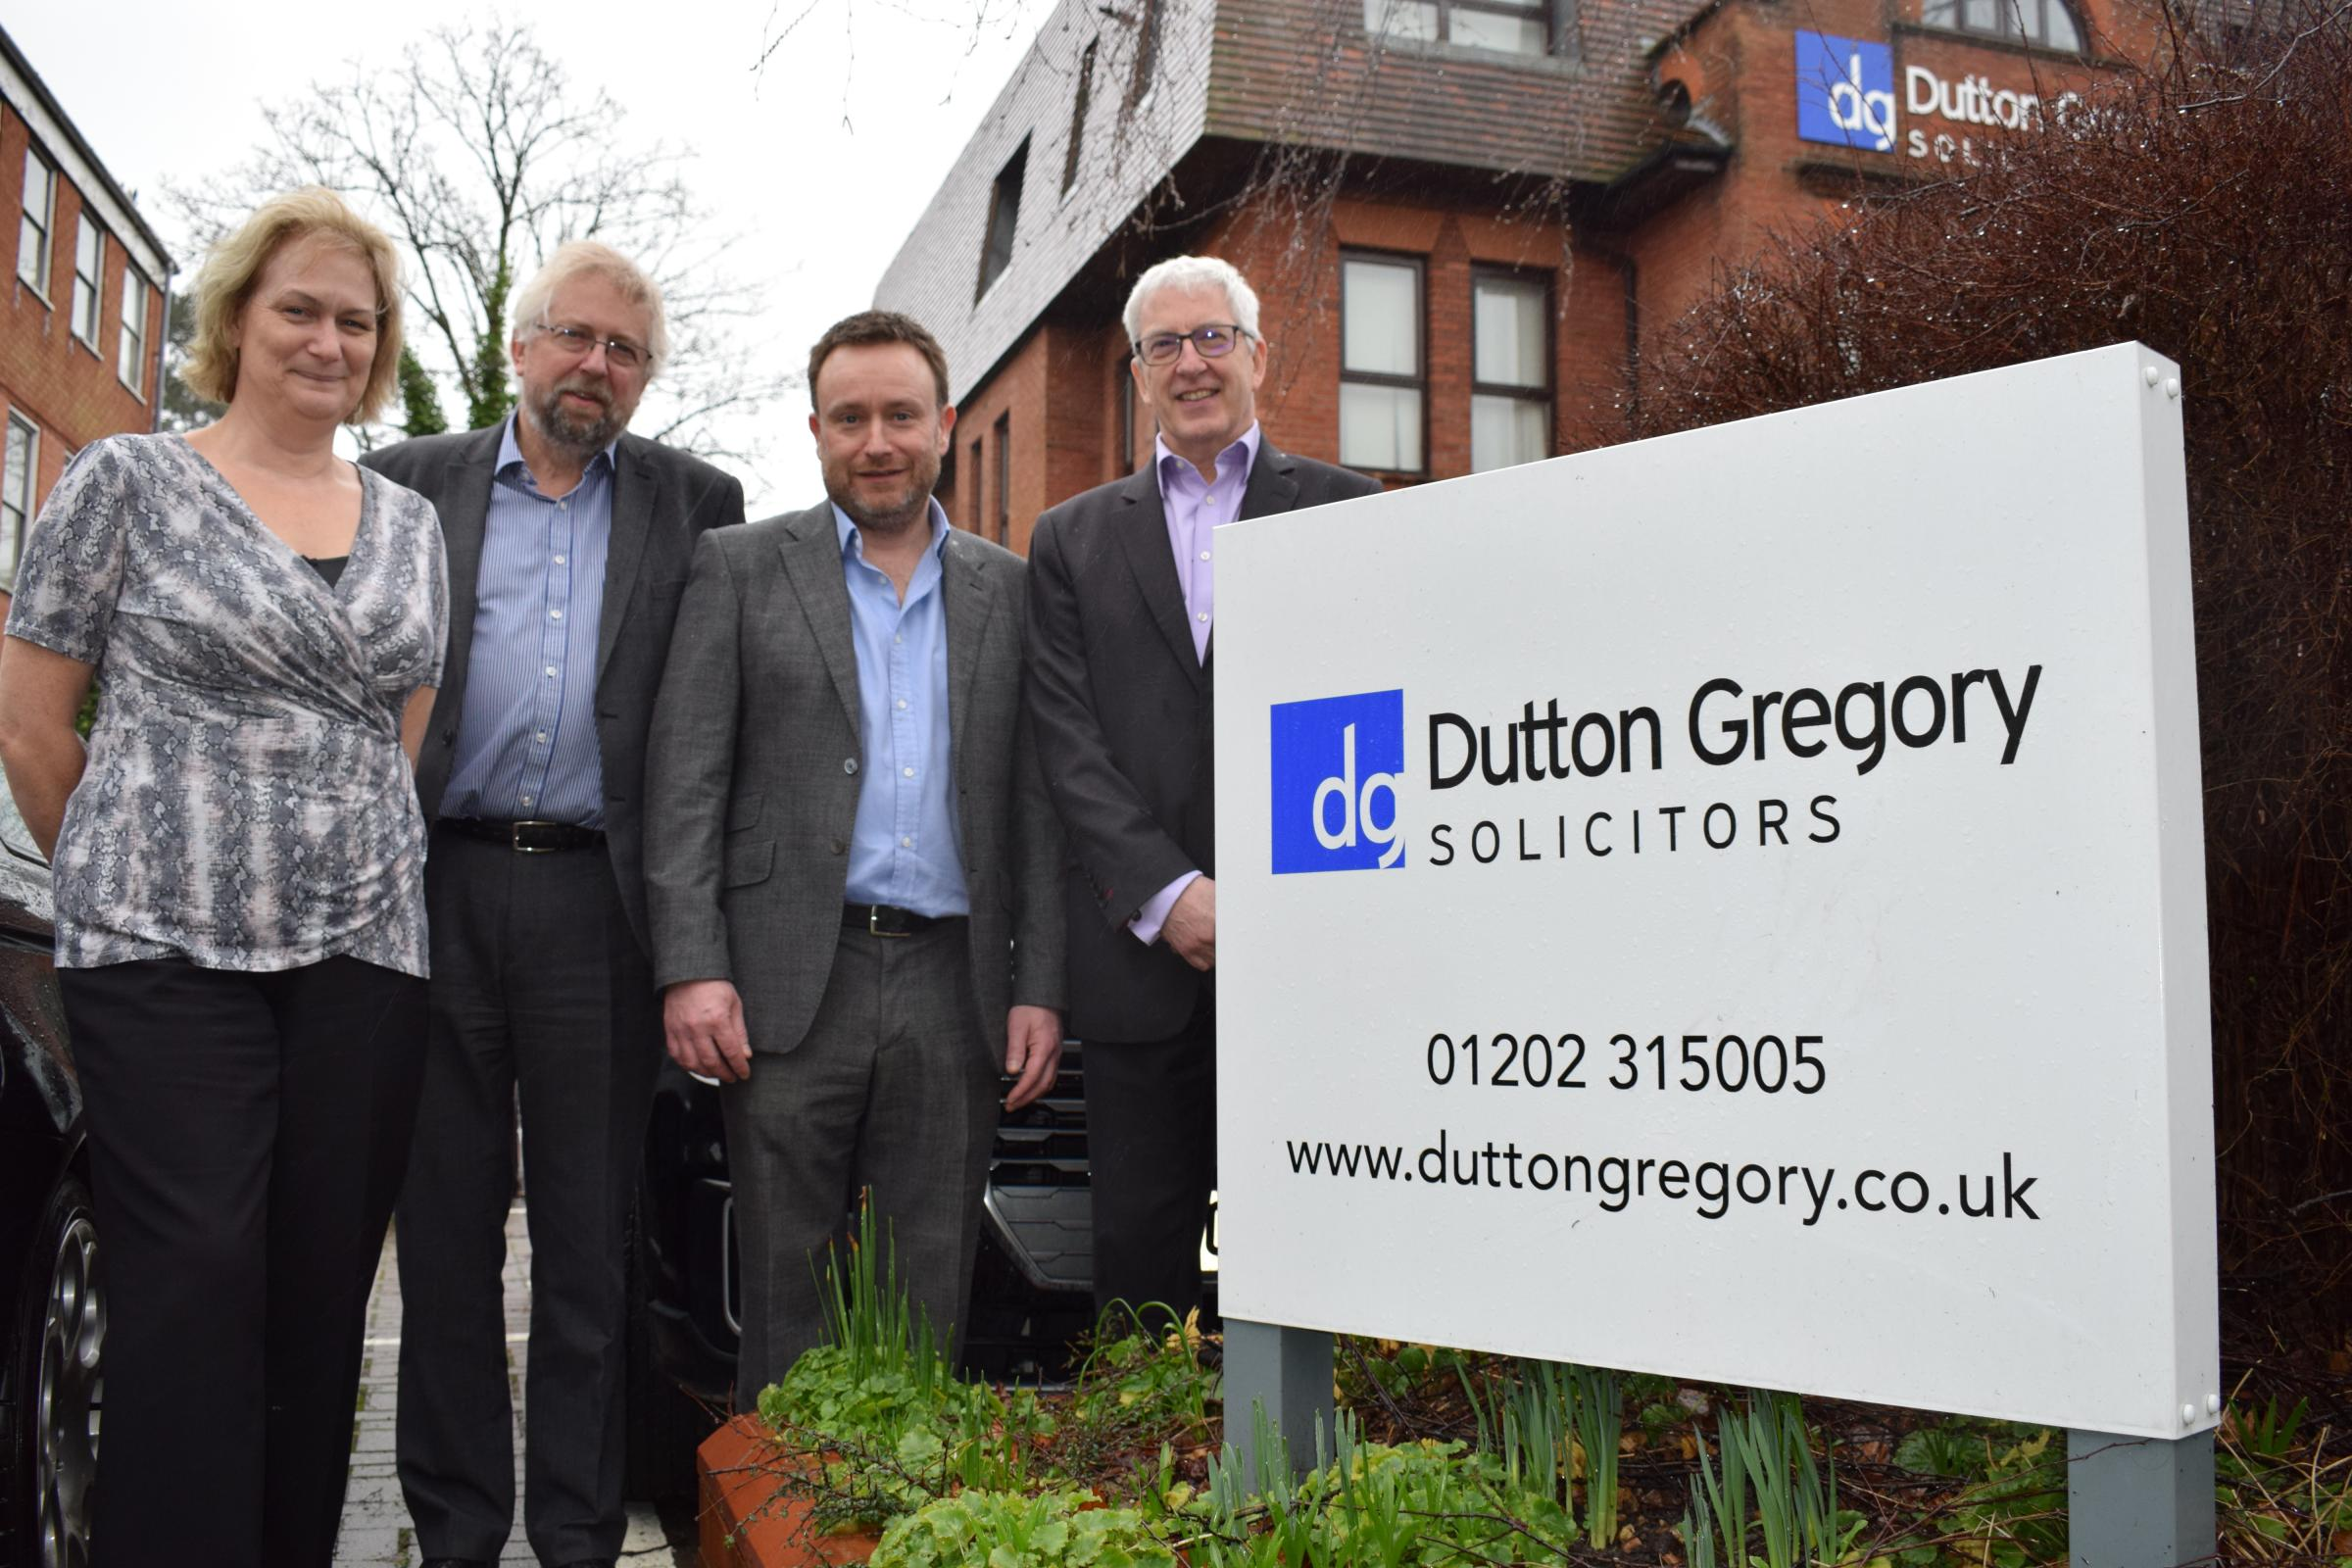 Staff from law firms Turners and Dutton Gregory prepare for their merger